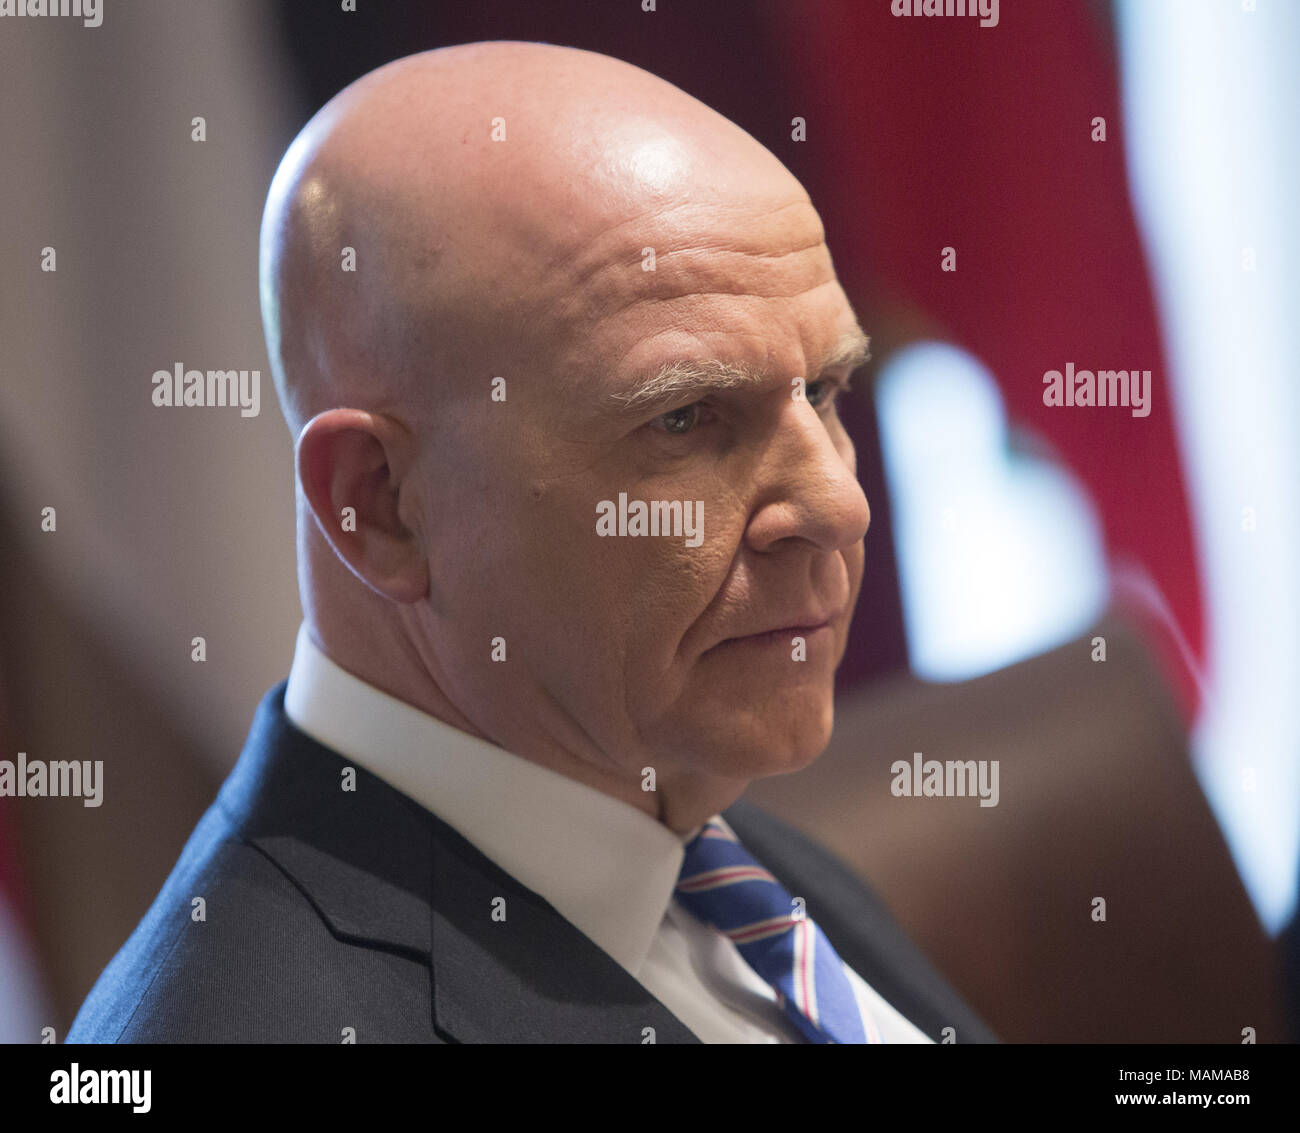 Presidential Foreign Policy Advisor Stock Photos Amp Presidential Foreign Policy Advisor Stock